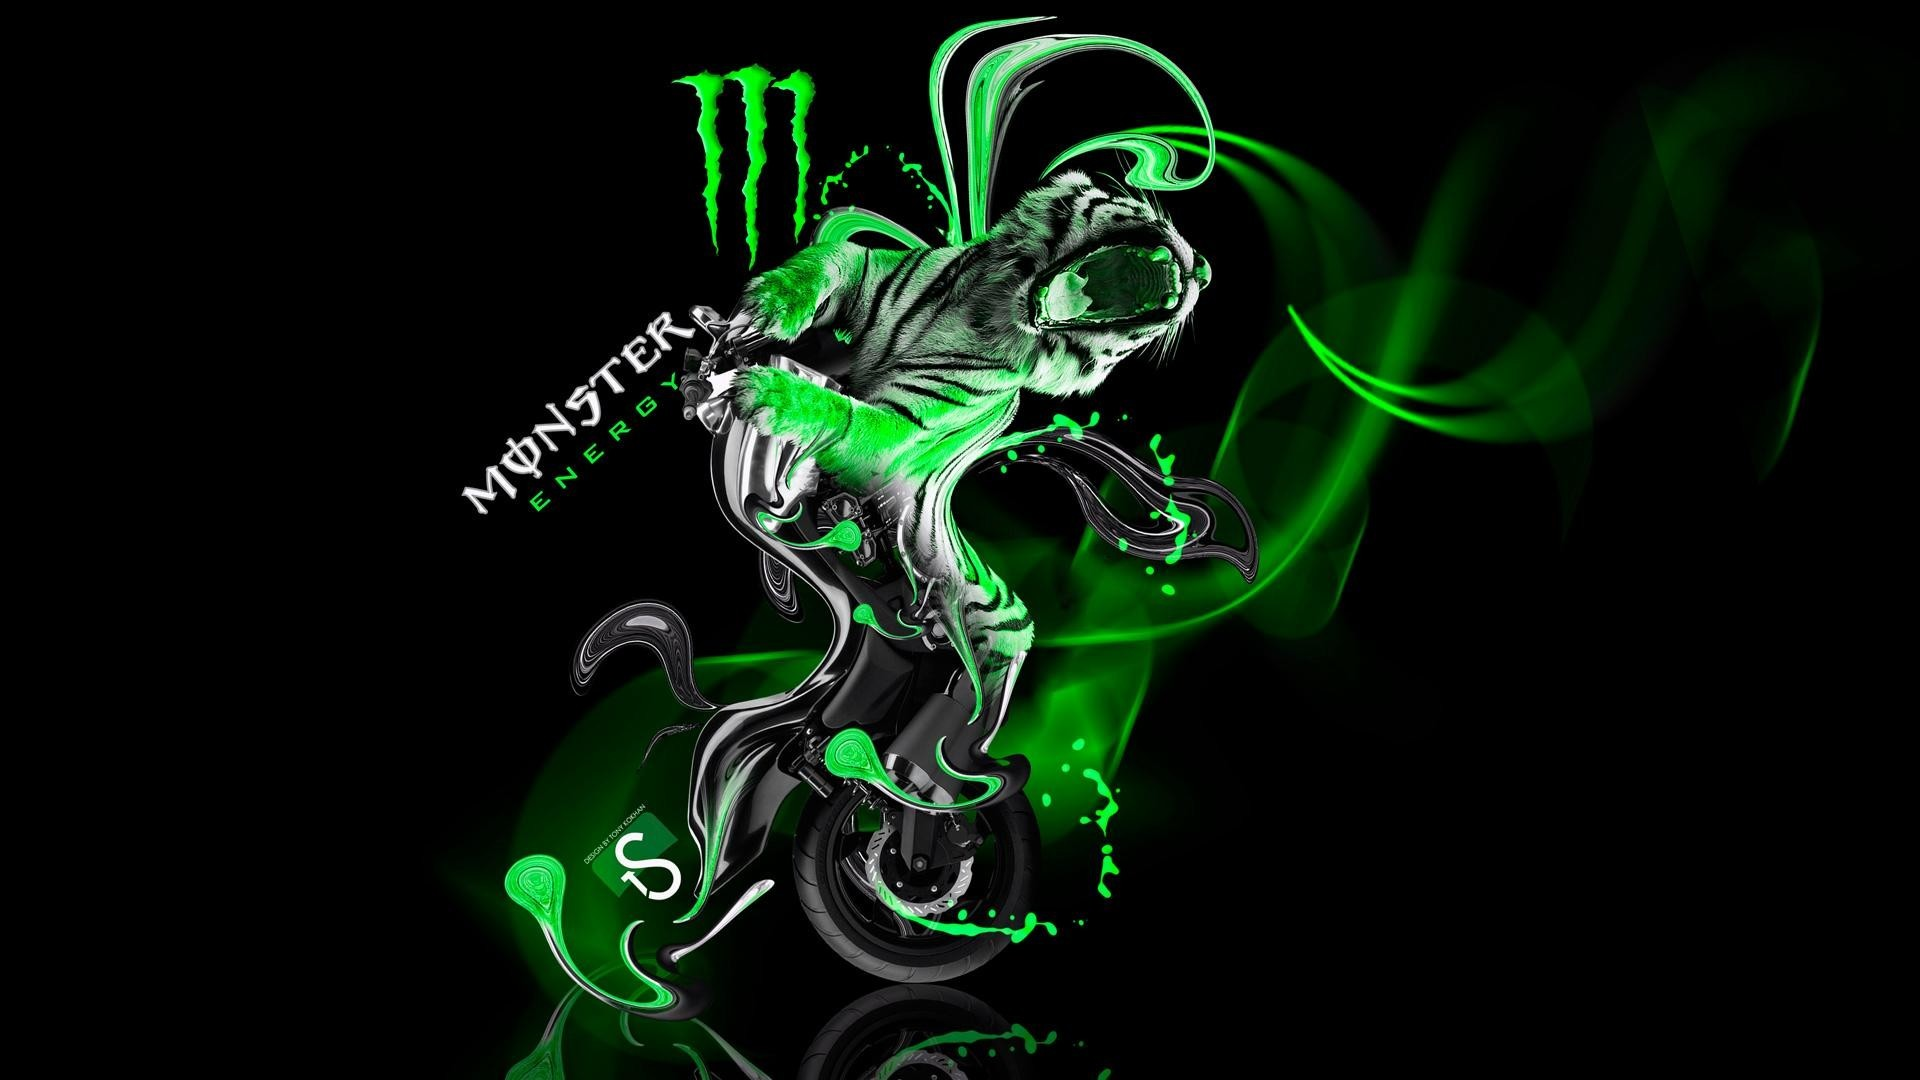 Res: 1920x1080,  Wallpapers-Monster-Energy-Moto-Yamaha-Vmax-Fantasy-Green